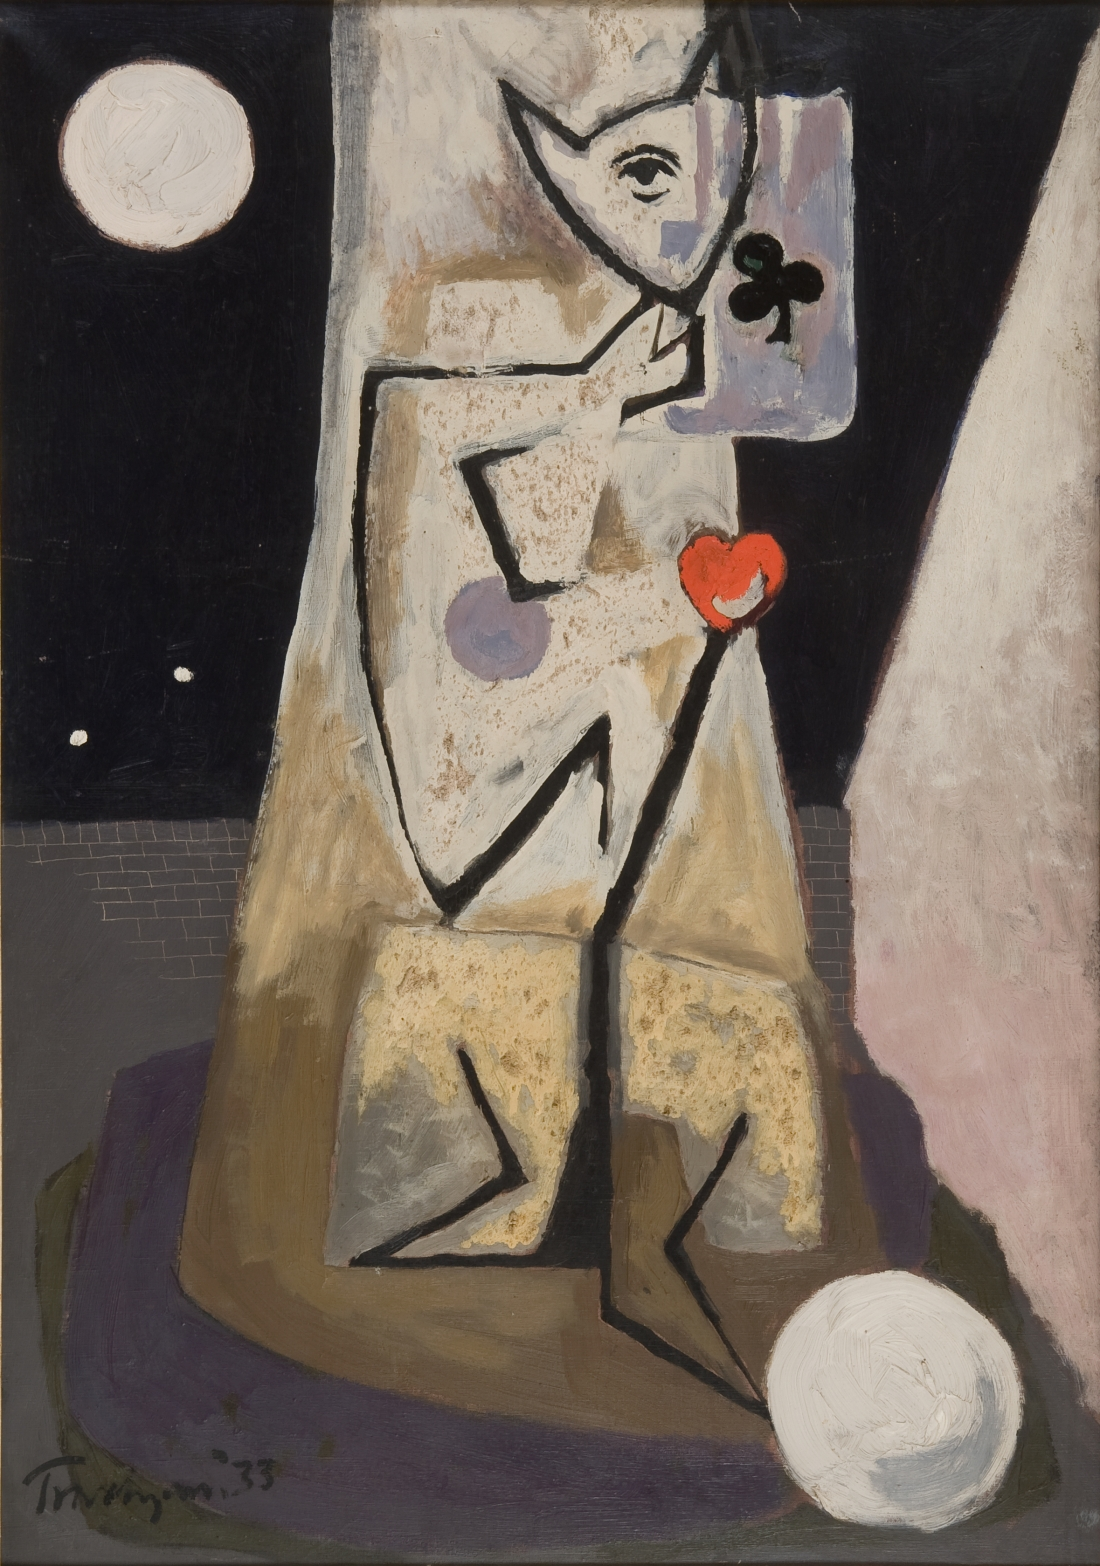 Julian Trevelyan, Standing Figure with Ace of Clubs, 1933, oil on canvas, Photograph Mike Fear, courtesy Jerwood Collection © The Julian Trevelyan Estate